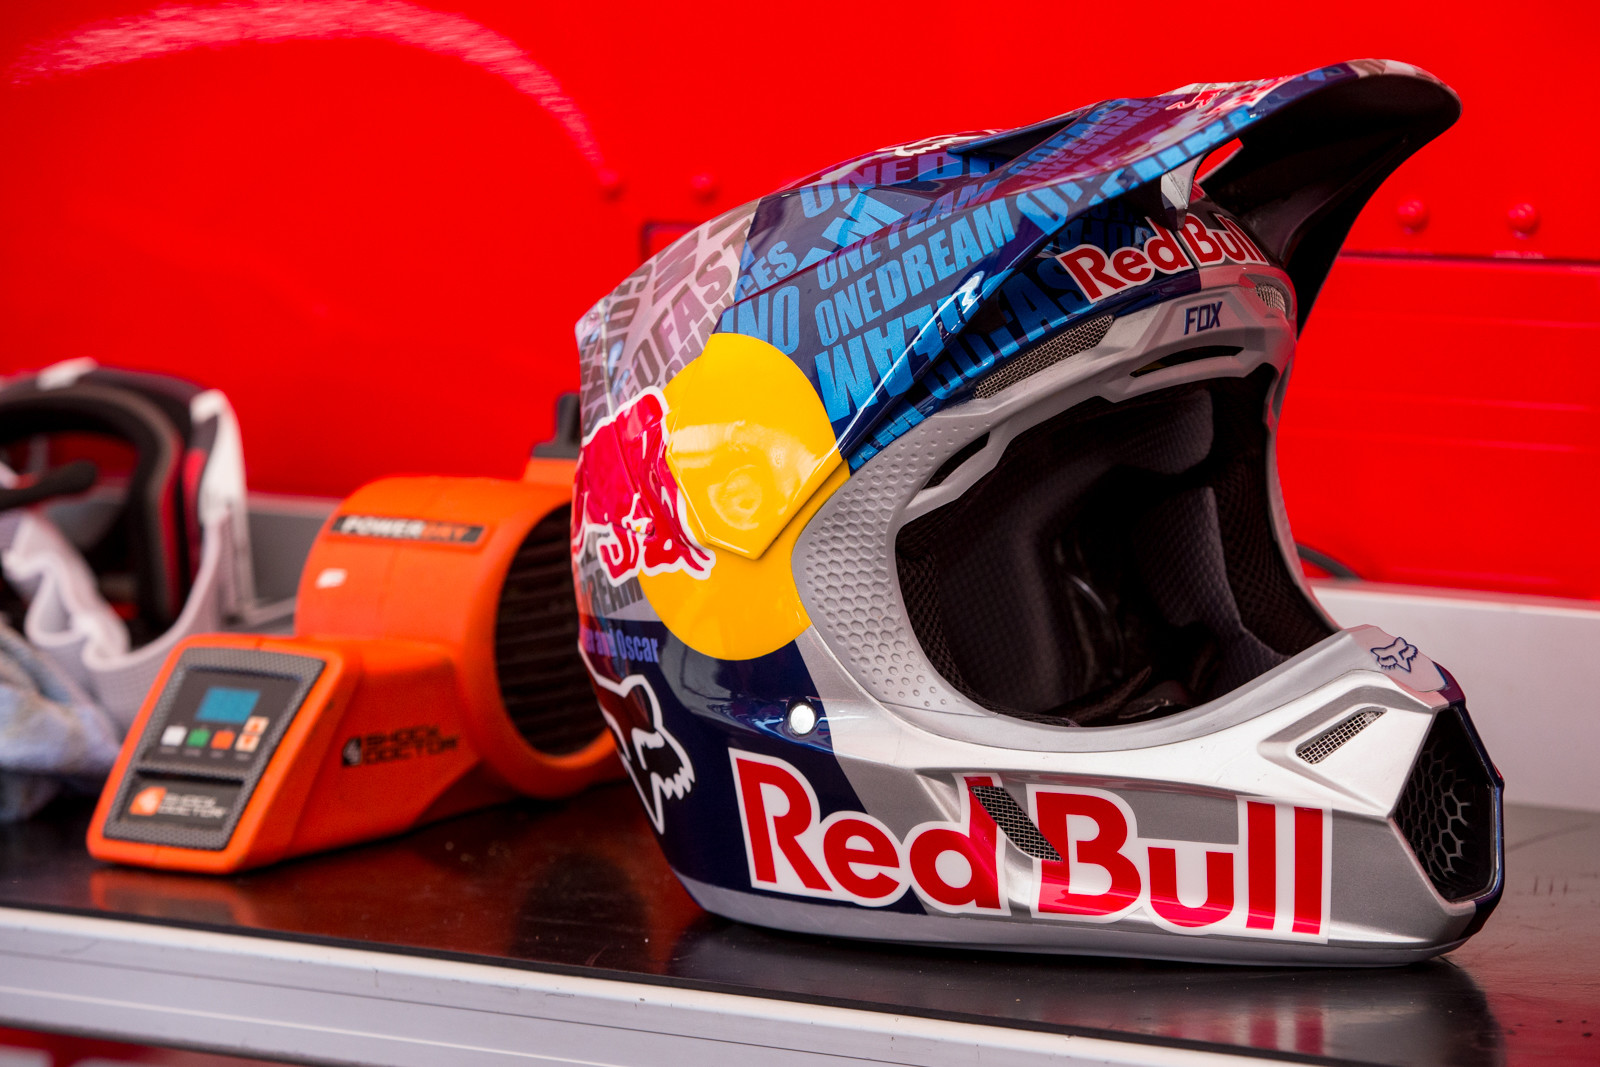 Kenny's lid this weekend is sick, check out all the wording.